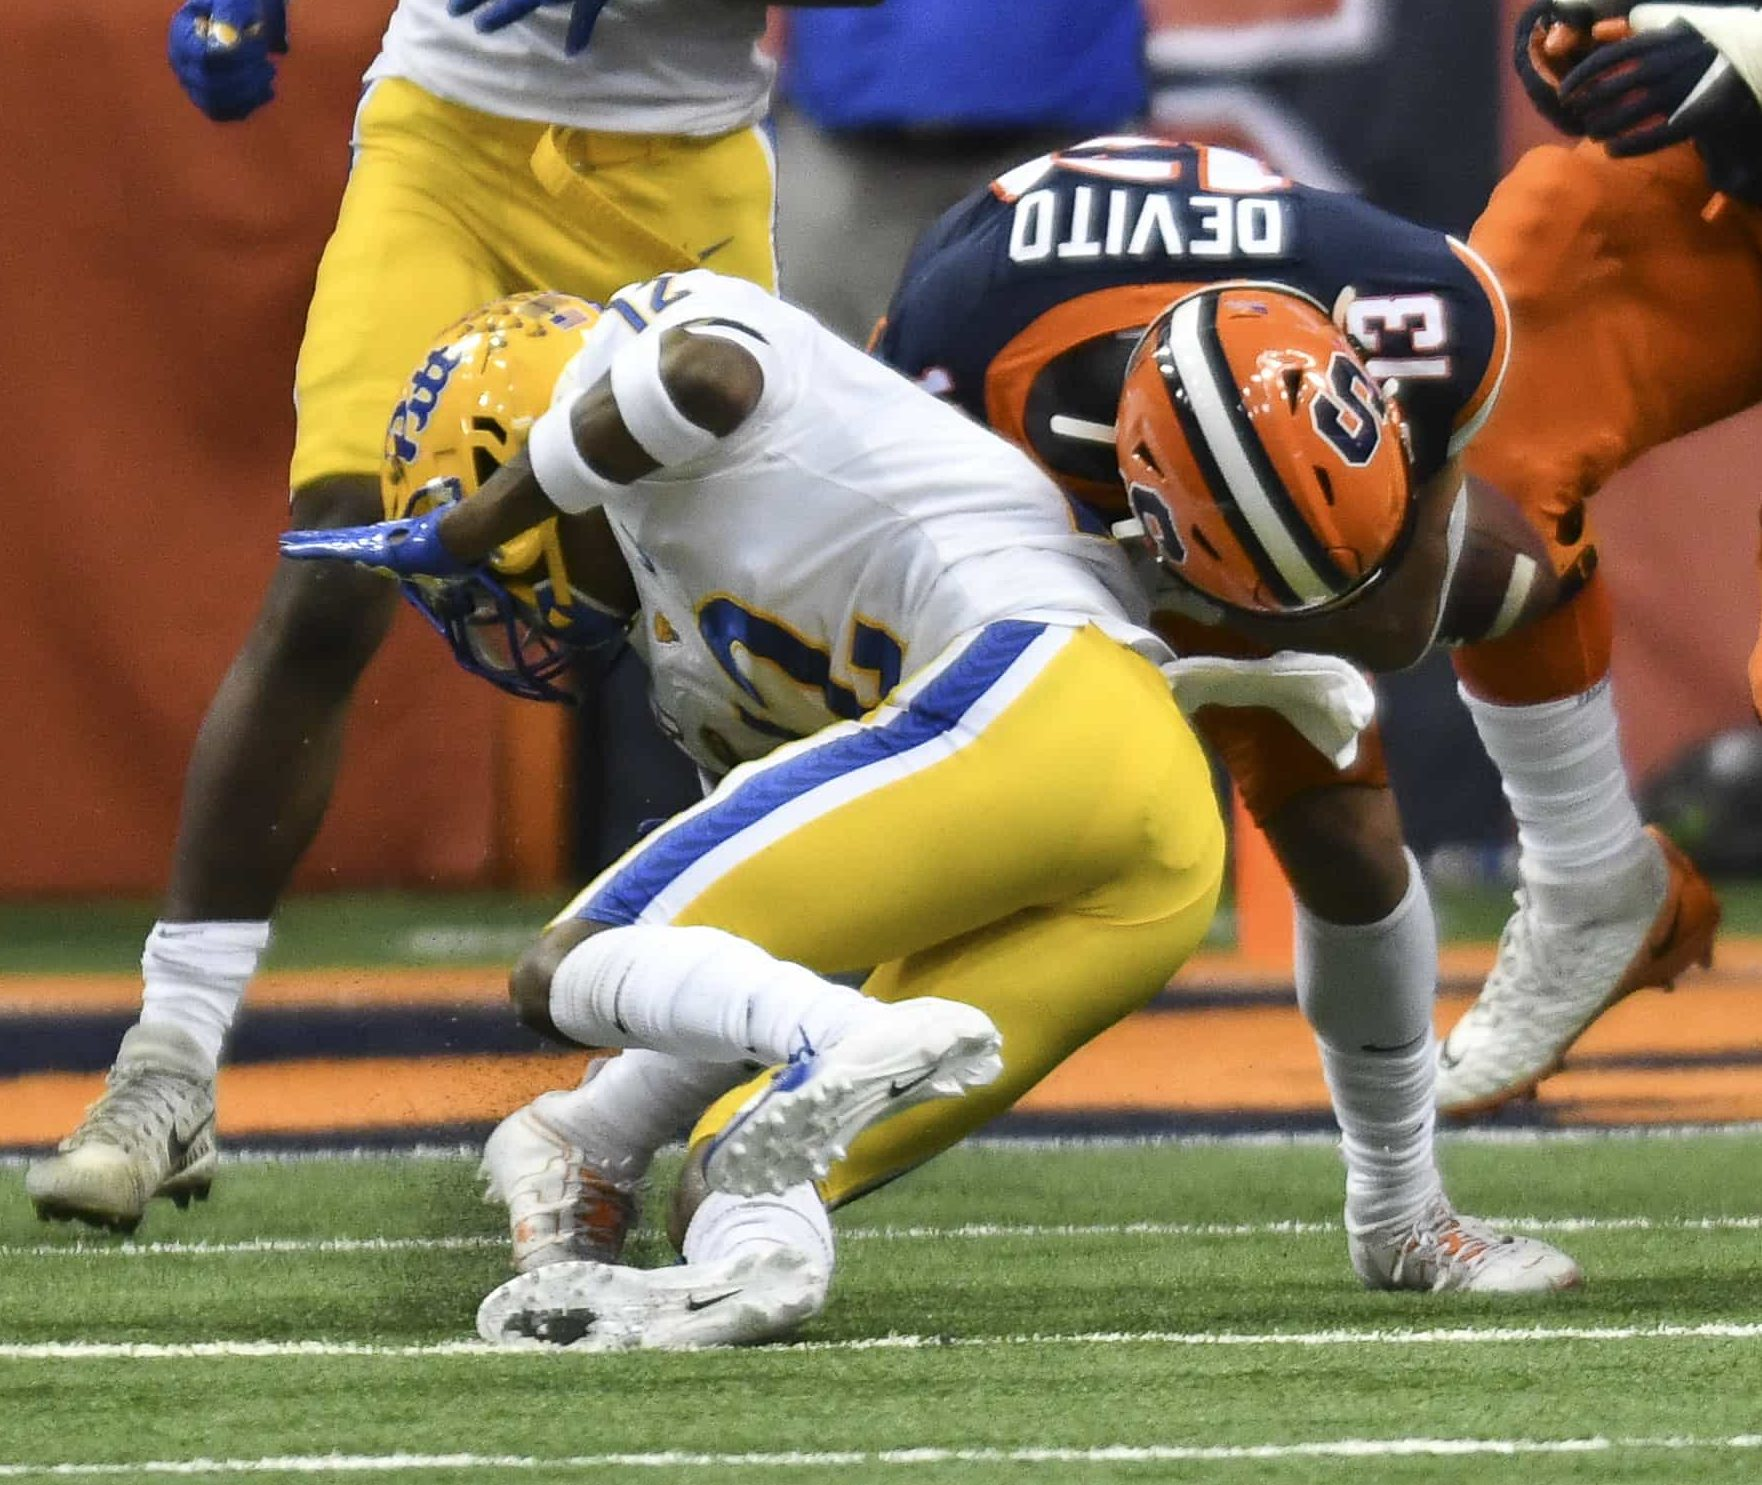 Tommy DeVito sustained a thunderous hit when Pitt defensive back Paris Ford lowered his shoulder. After the play DeVito exited the game.